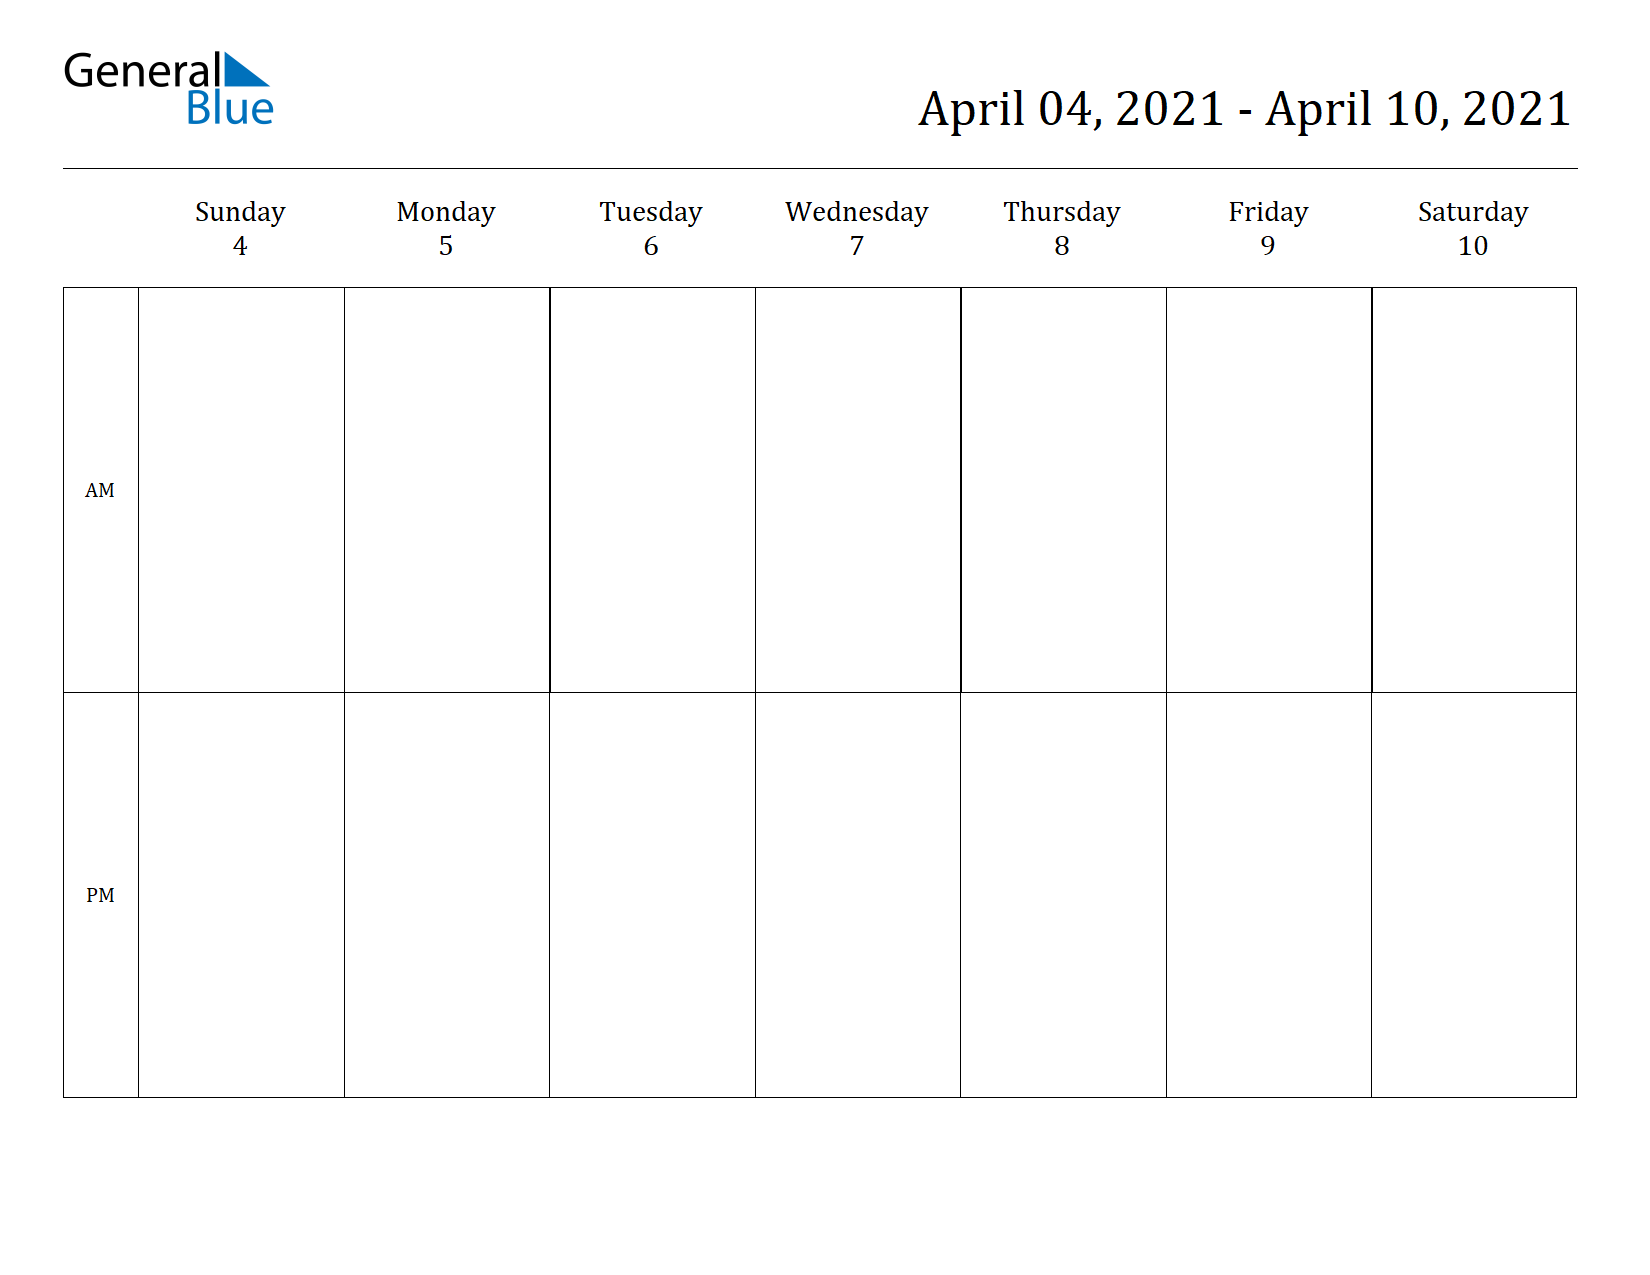 Weekly Calendar for Apr 04, 2021 to Apr 10, 2021